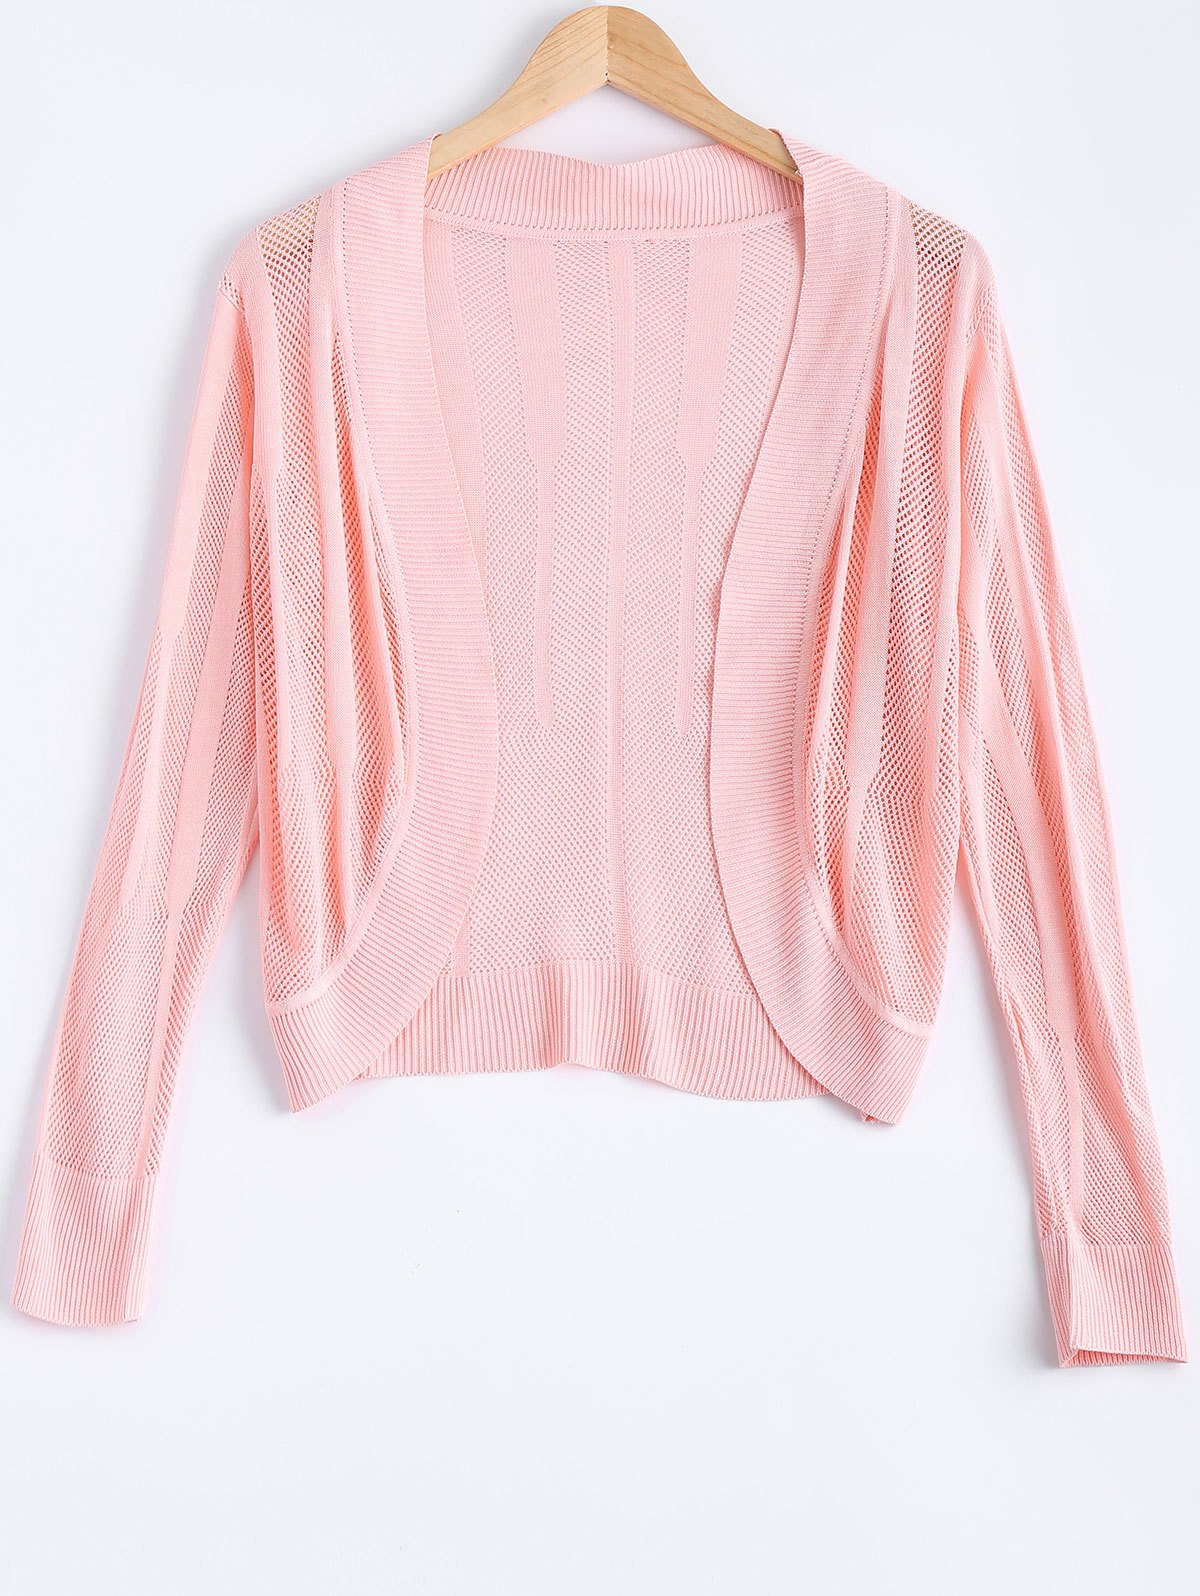 Brief Pure Color Textured Knitted Cardigan For WomenWomen<br><br><br>Size: ONE SIZE<br>Color: LIGHT PINK